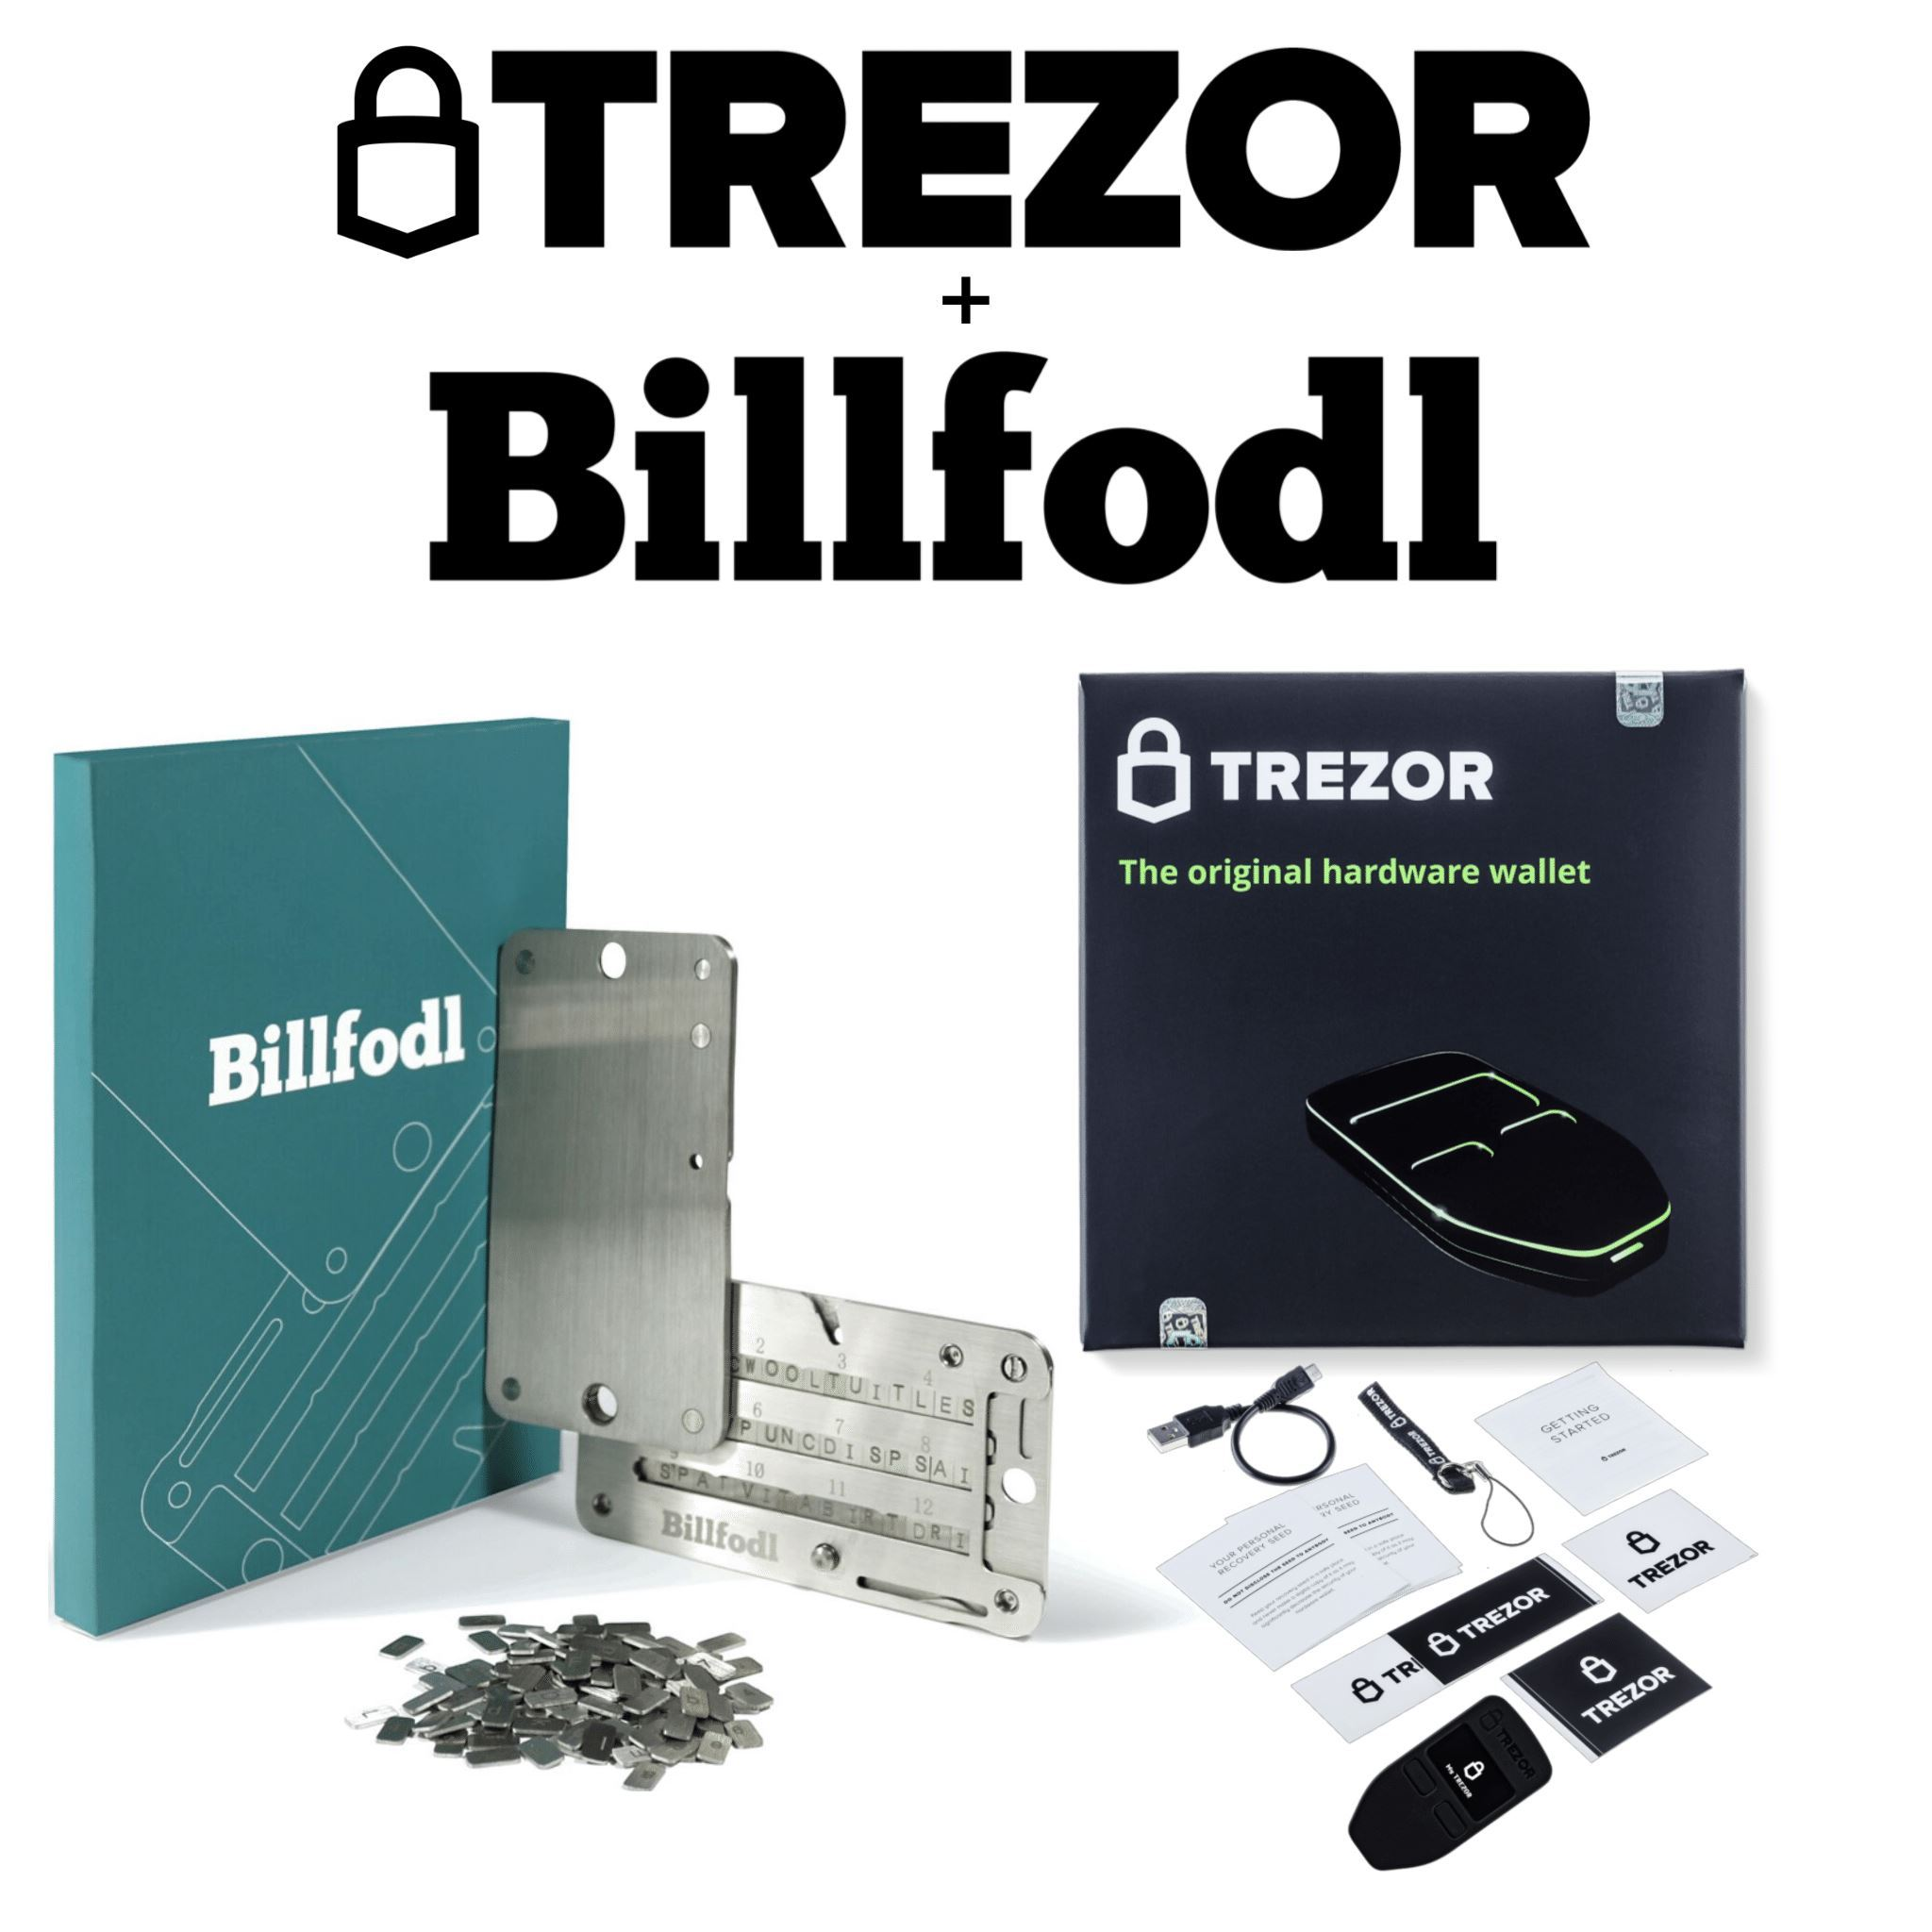 Trezor One and Billfodl Box Contents